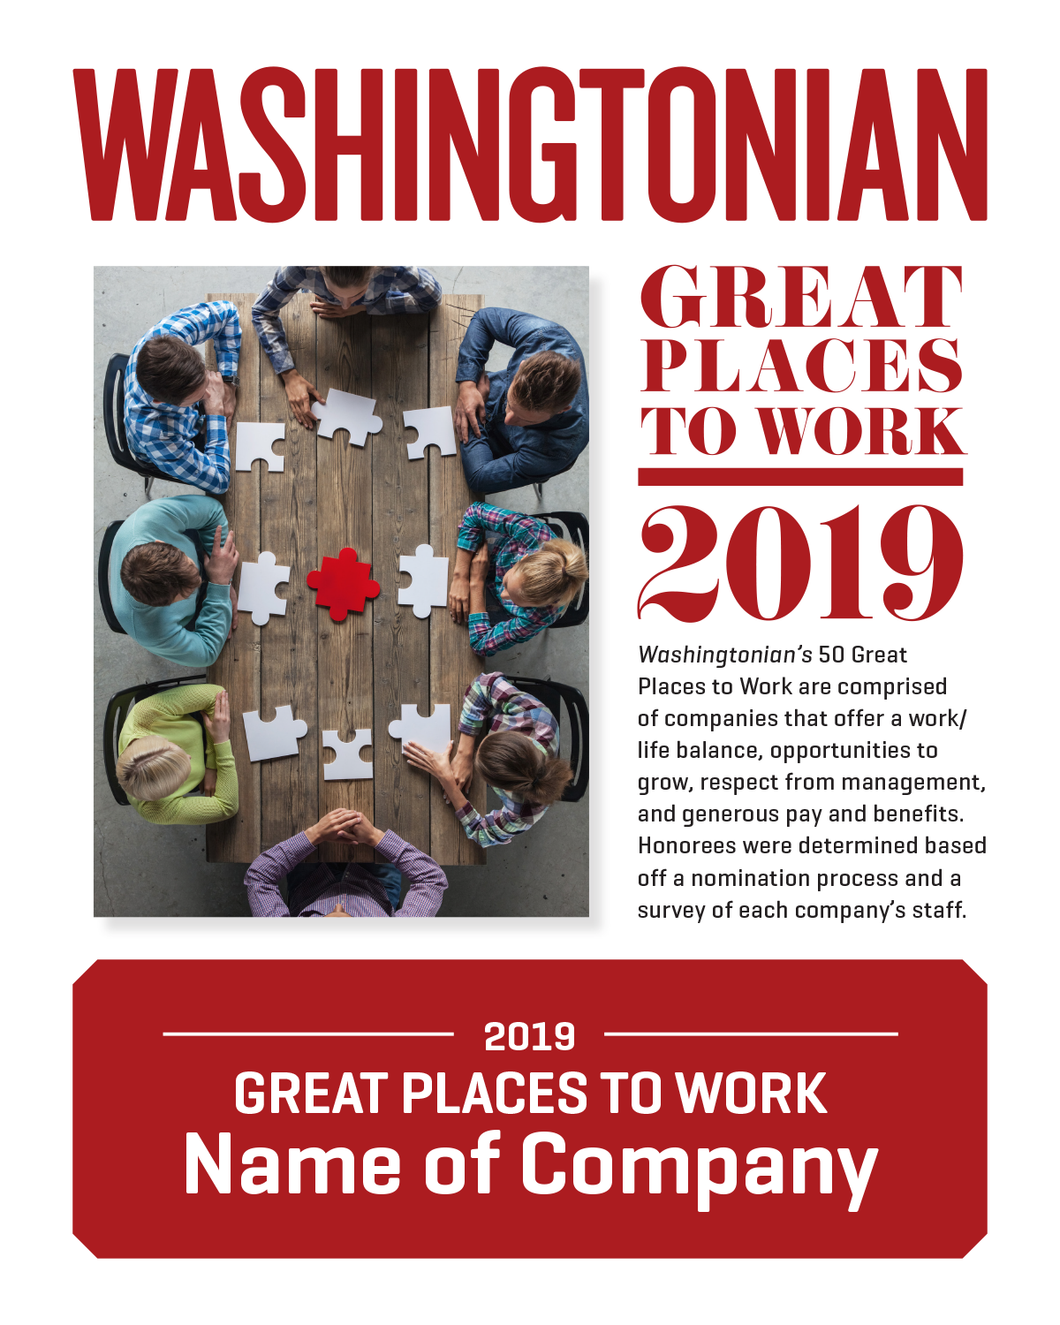 Washingtonian Great Places to Work Plaque